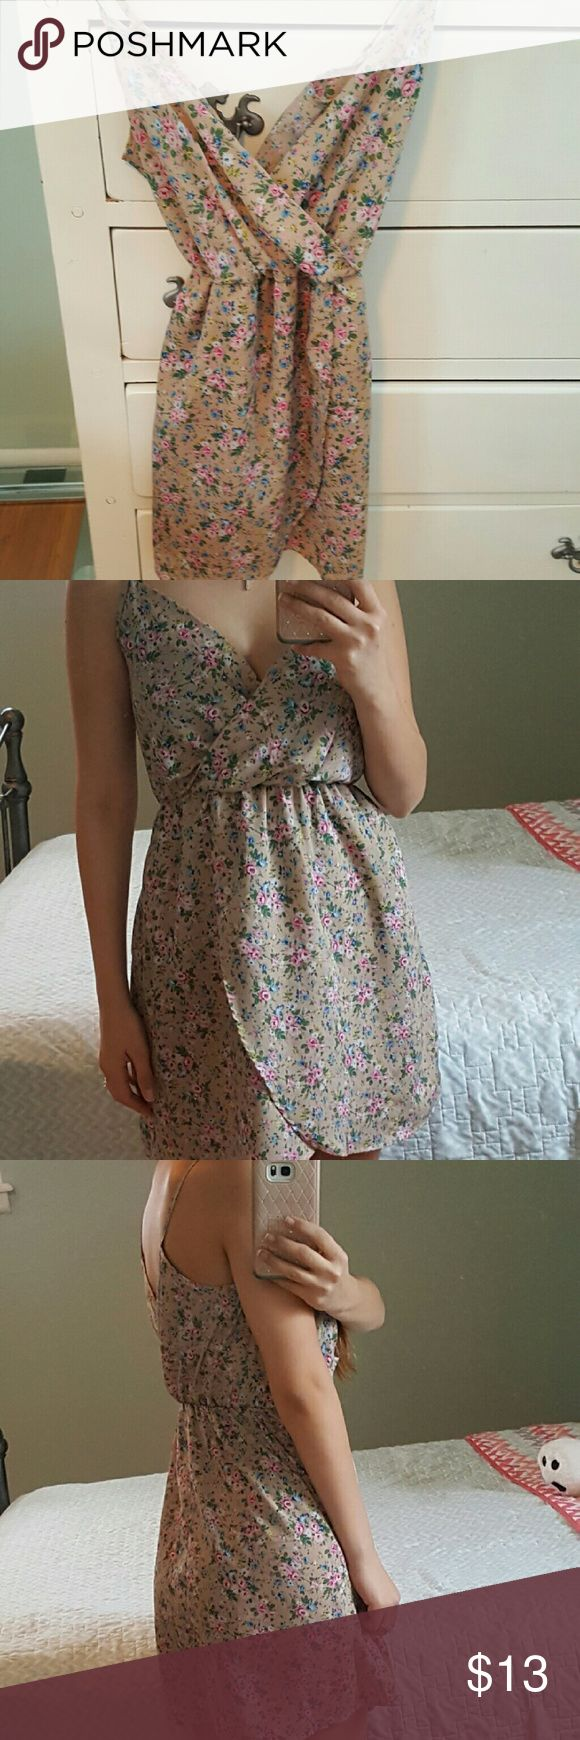 Dress Good condition Charlotte Russe short floral dress, color brown with pink flowers size:S Charlotte Russe Dresses Midi